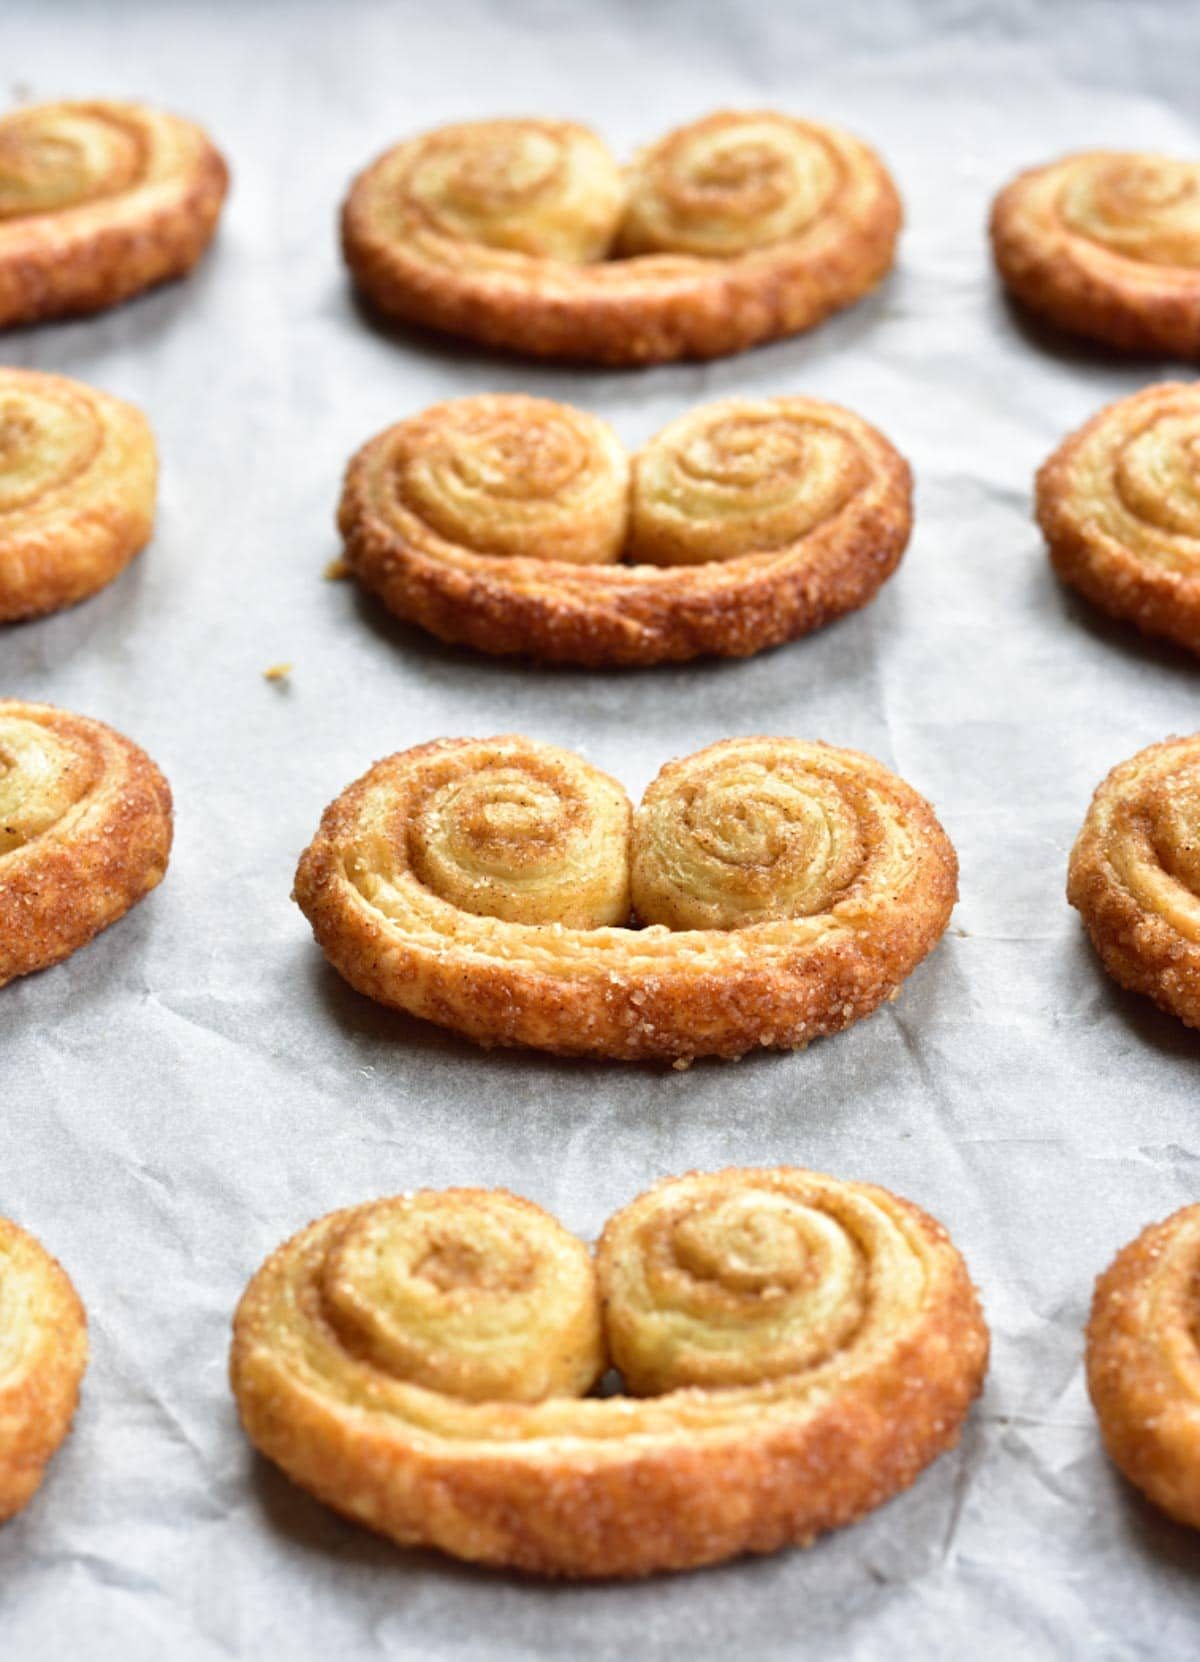 cinnamon palmiers on a baking paper sheet